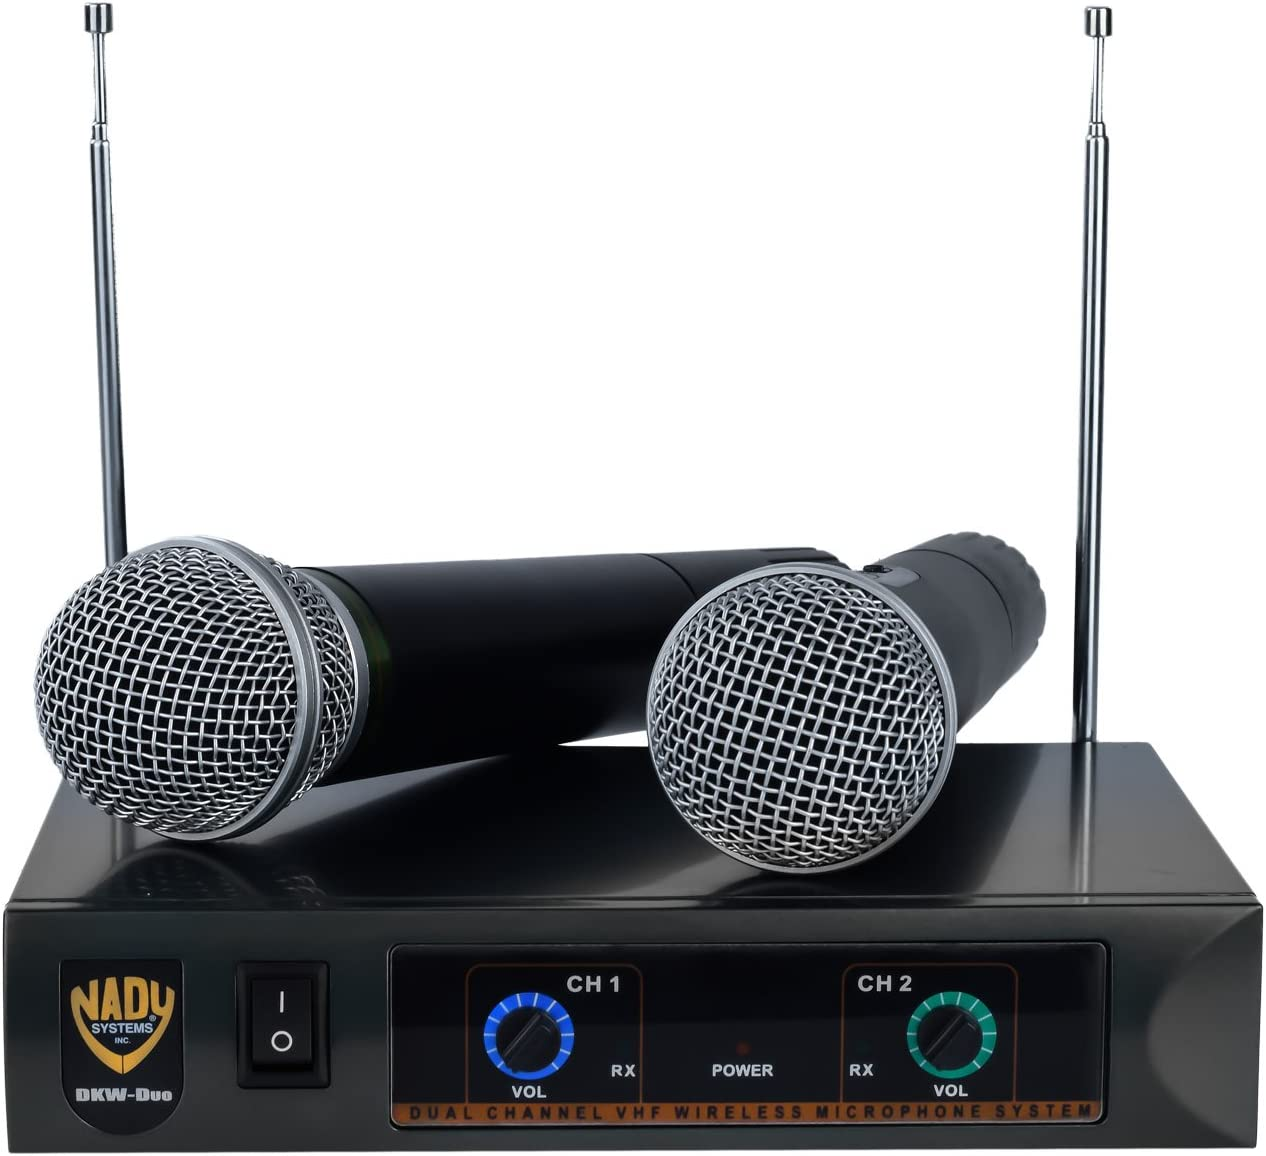 Nady DKW Limited time for free shipping DUO HT P R Wireless System VHF Dual Microphone Handheld sale